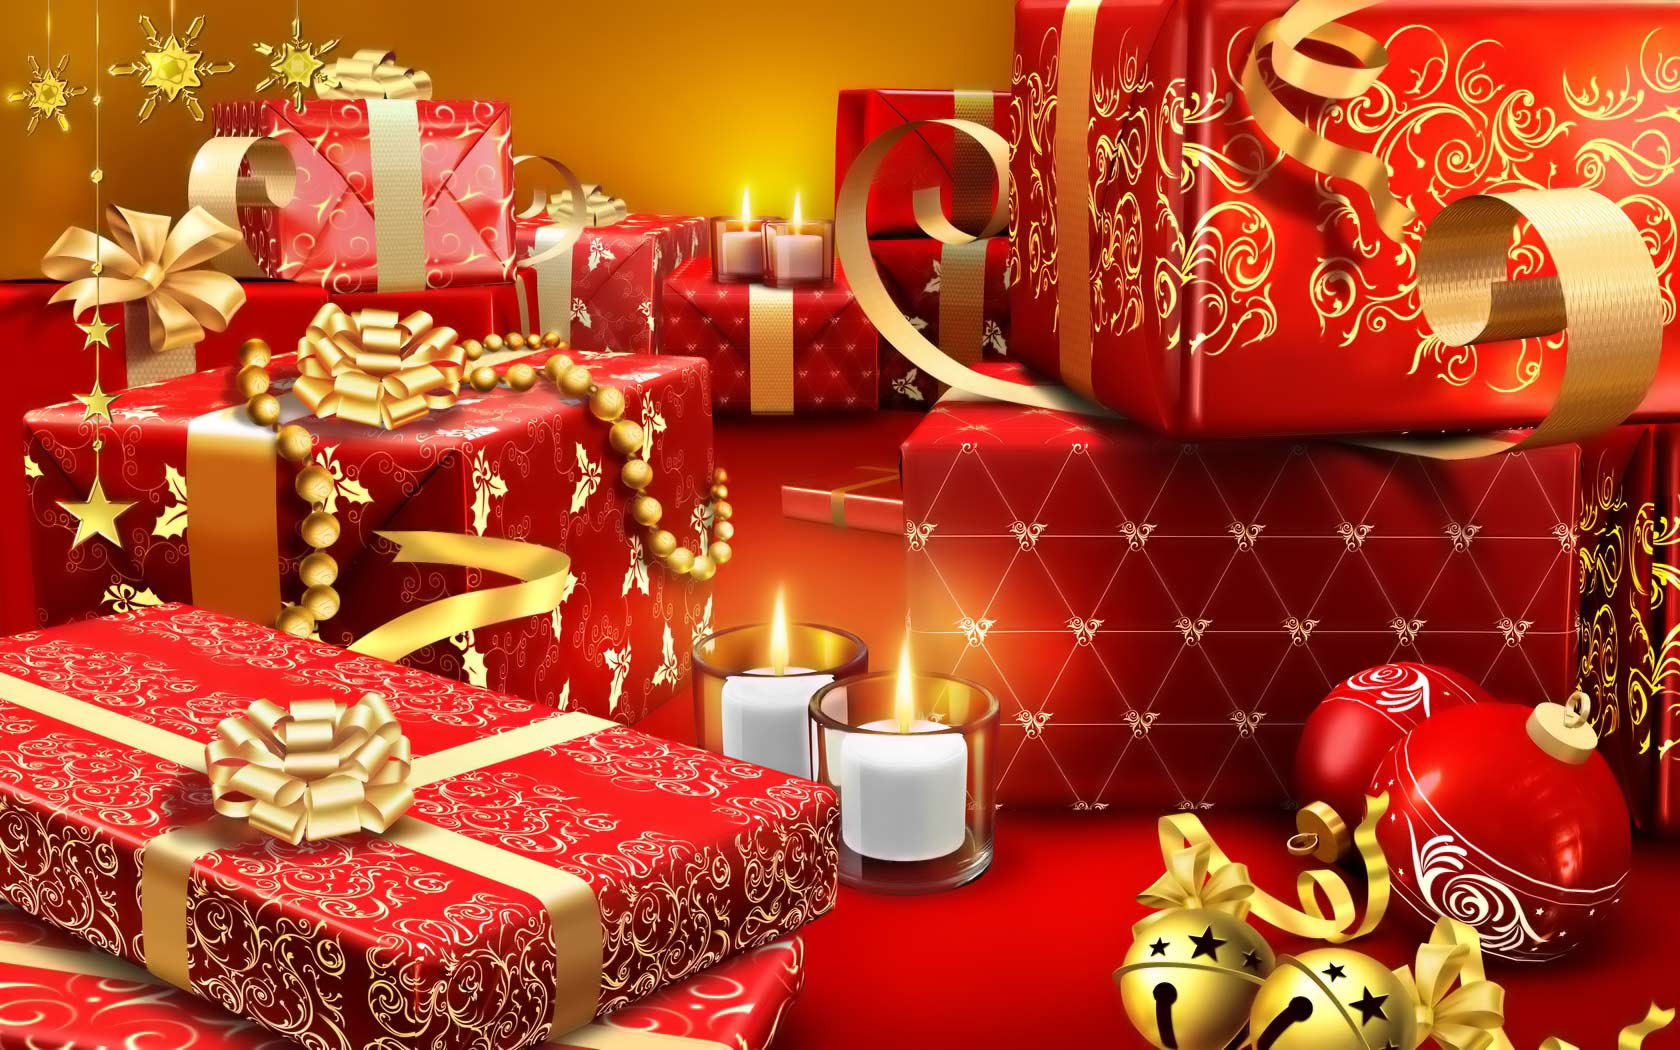 Christmas Gifts Background Desktop Download Free Backgrounds